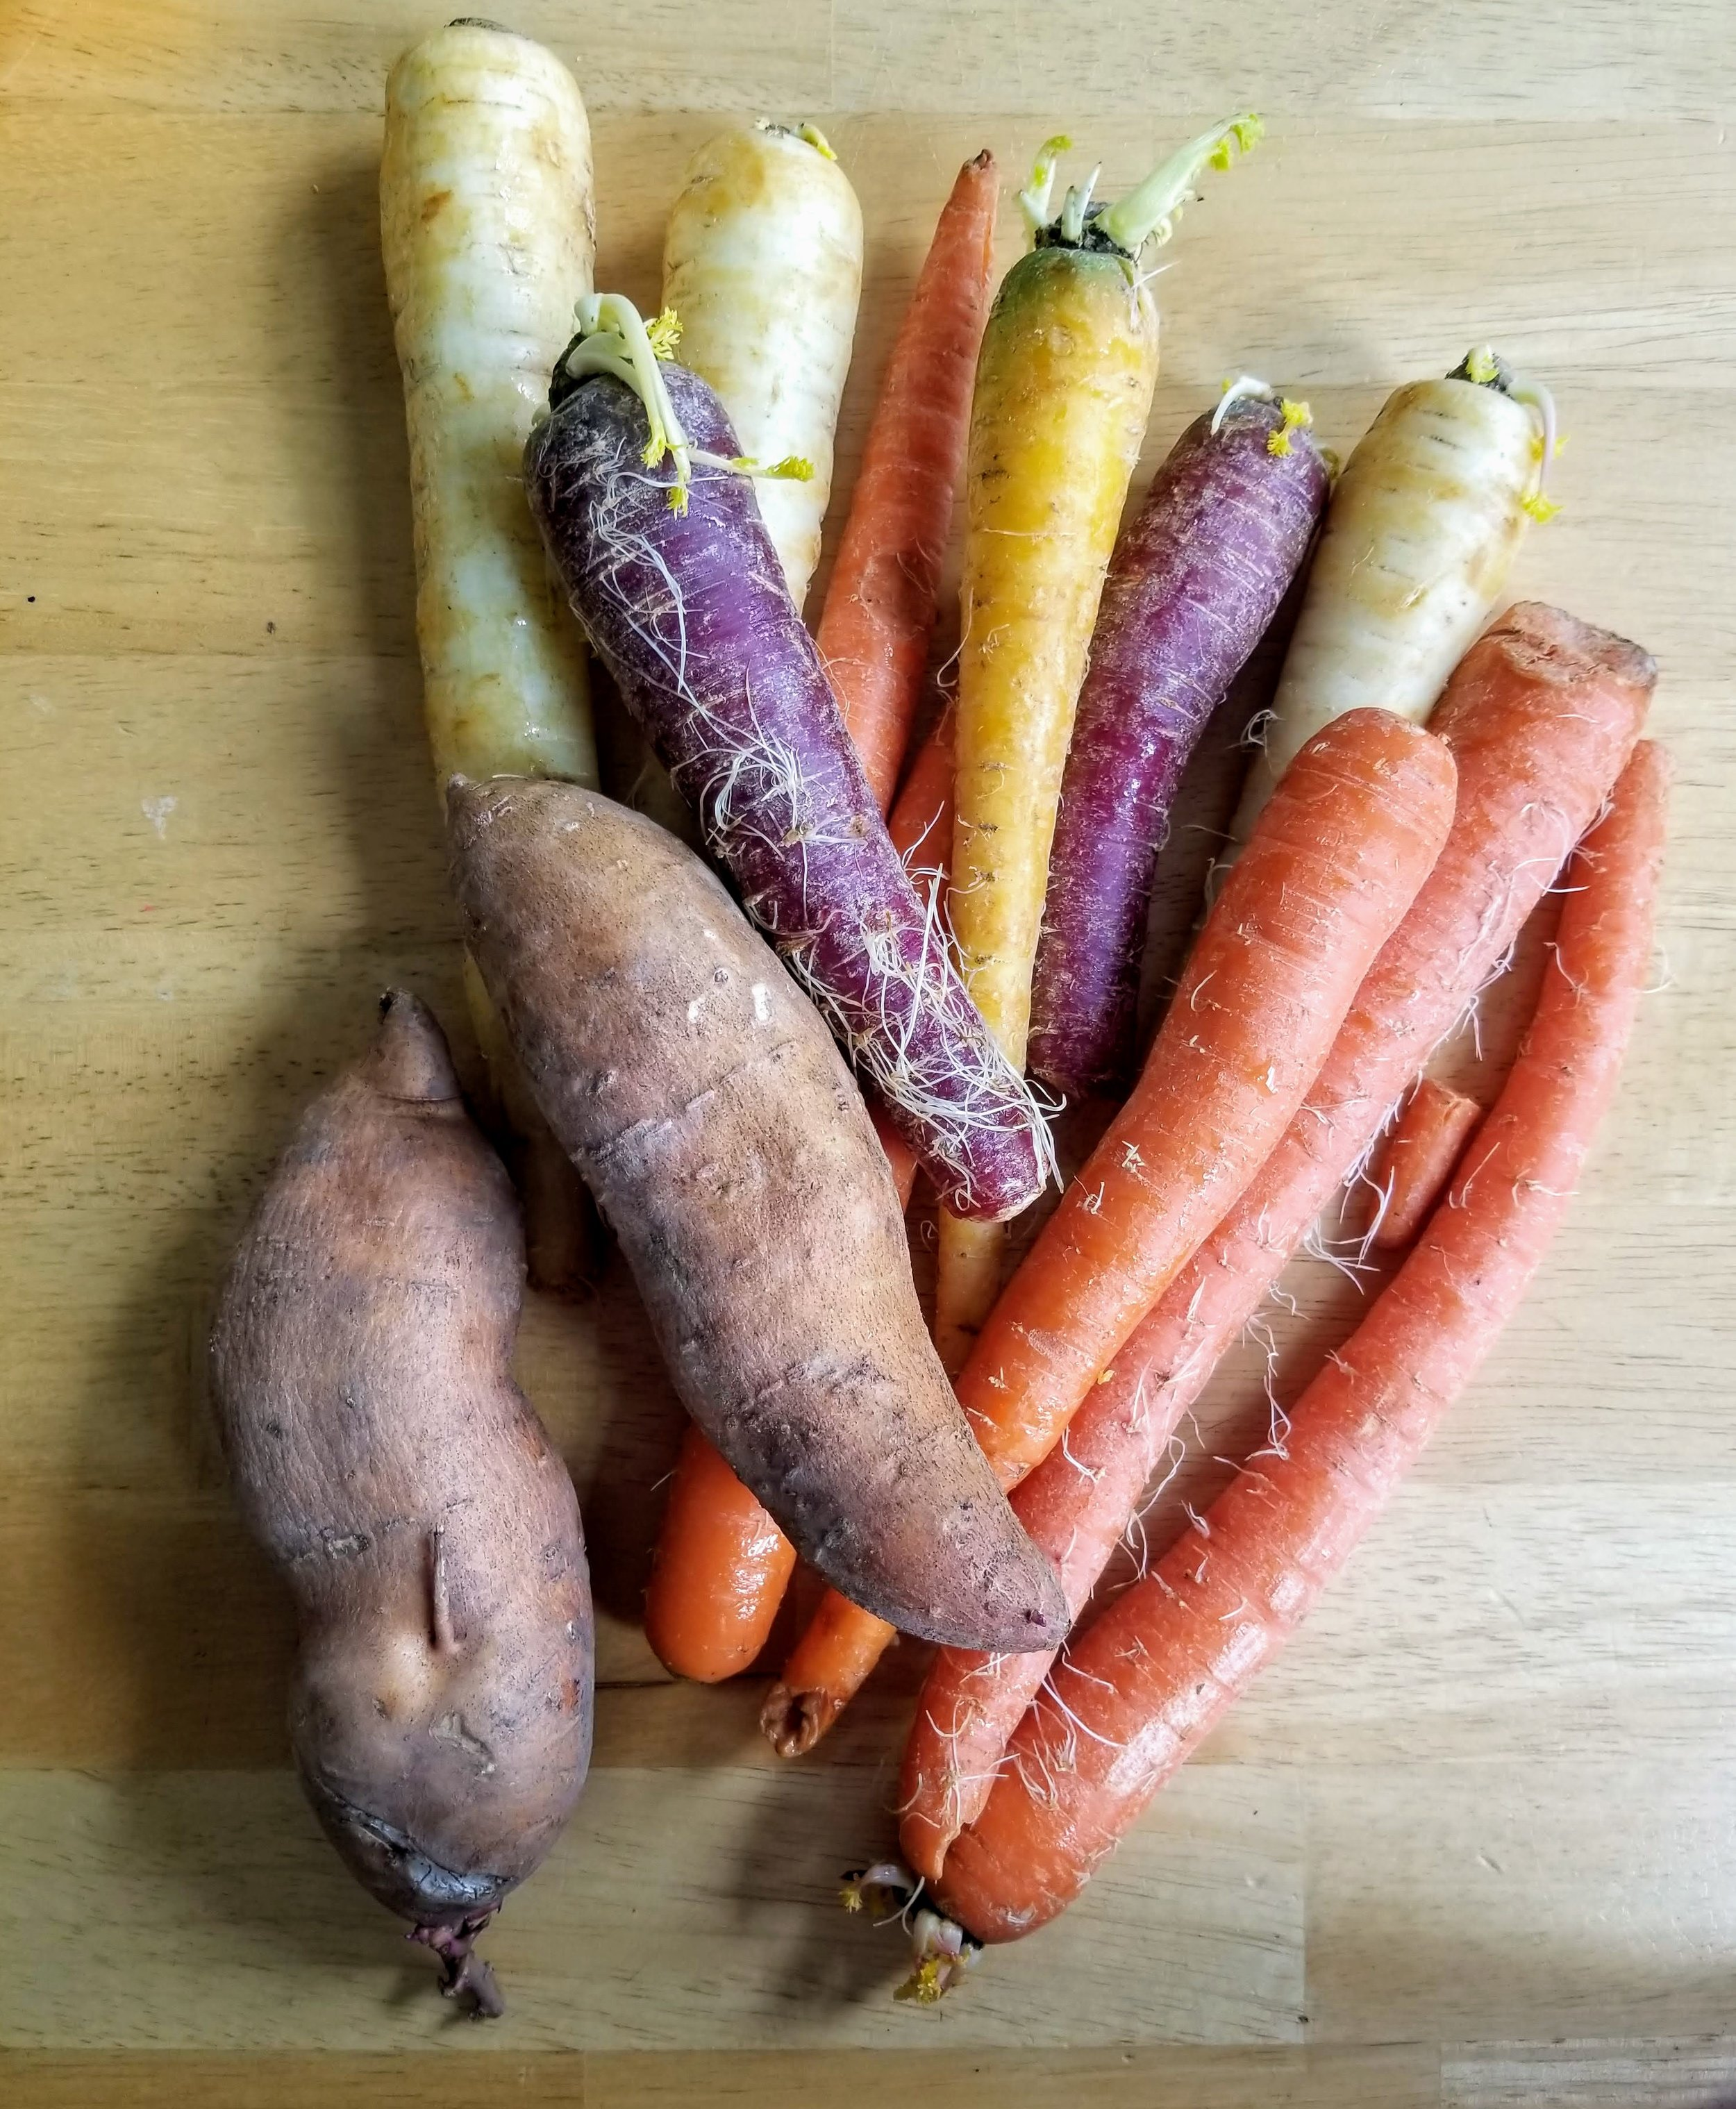 1. Root Veggies - Root vegetables balance hormones by balancing blood sugar through fiber. Carrots are especially helpful for preventing estrogen dominance. Sweet potato contains compounds that boost progesterone levels. Radishes, onions, garlic, turnips, parsnips, celeriac, and rutabaga balance hormones by providing food for the healthy bacteria in our gut.Carrots and radishes are easy to eat raw with dips. Turnips, parsnips, and rutabaga are easy to incorporate into soups and stews. Root vegetables can be roasted with olive oil or lard and eaten with sausage, or boiled, mashed, and whipped with butter to make a delicious mashed potato replacement. For extra micronutrients, buy rainbow varieties of carrots, potatoes, and radishes (Trader Joe's is the best grocer I know for making rainbow vegetables available at an affordable price).